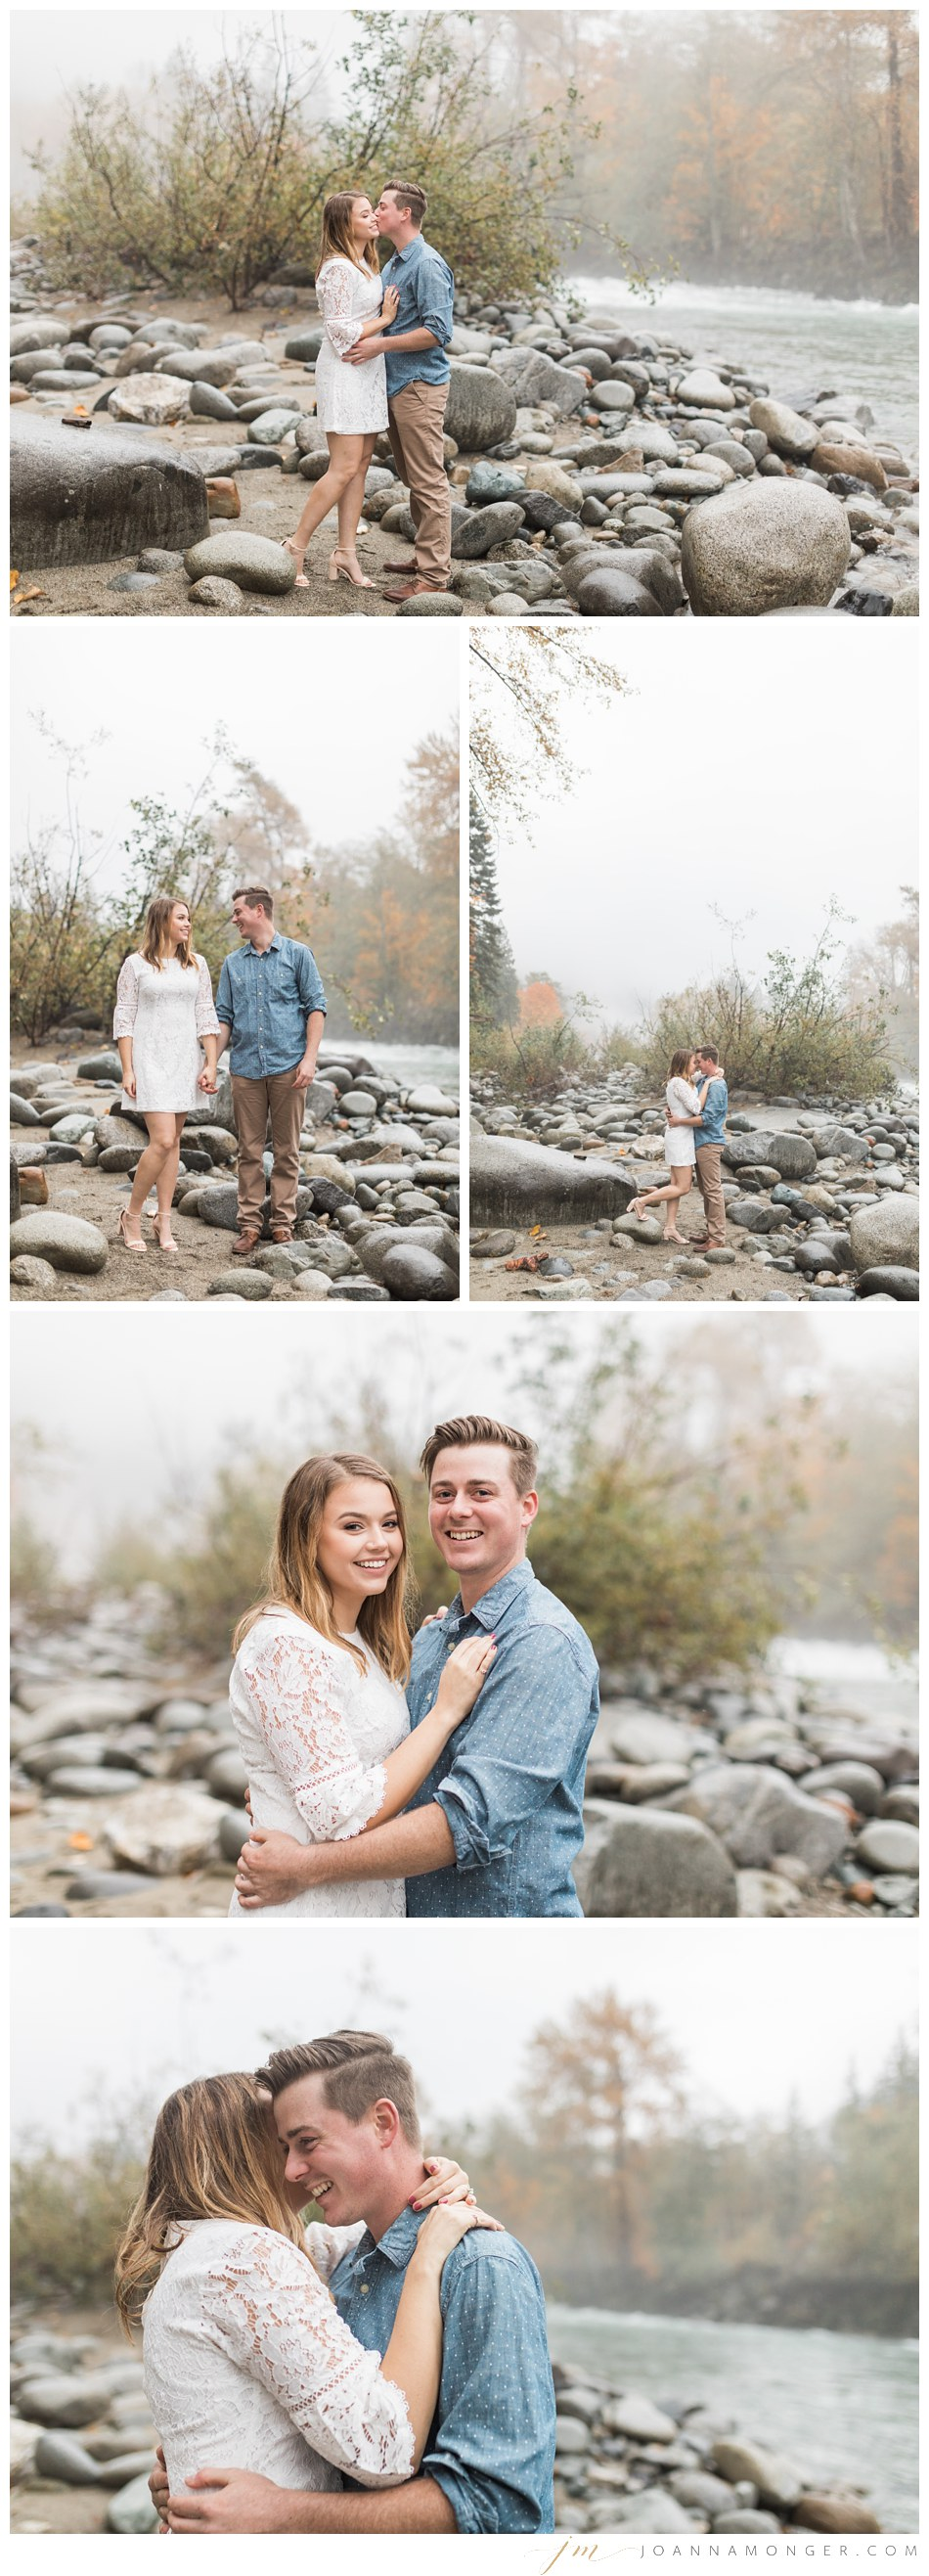 A couple lovingly holds hands and embraces for their mountain engagement shoot in Snohomish, WA. | Joanna Monger Photography | Snohomish & Seattle Wedding Photographer